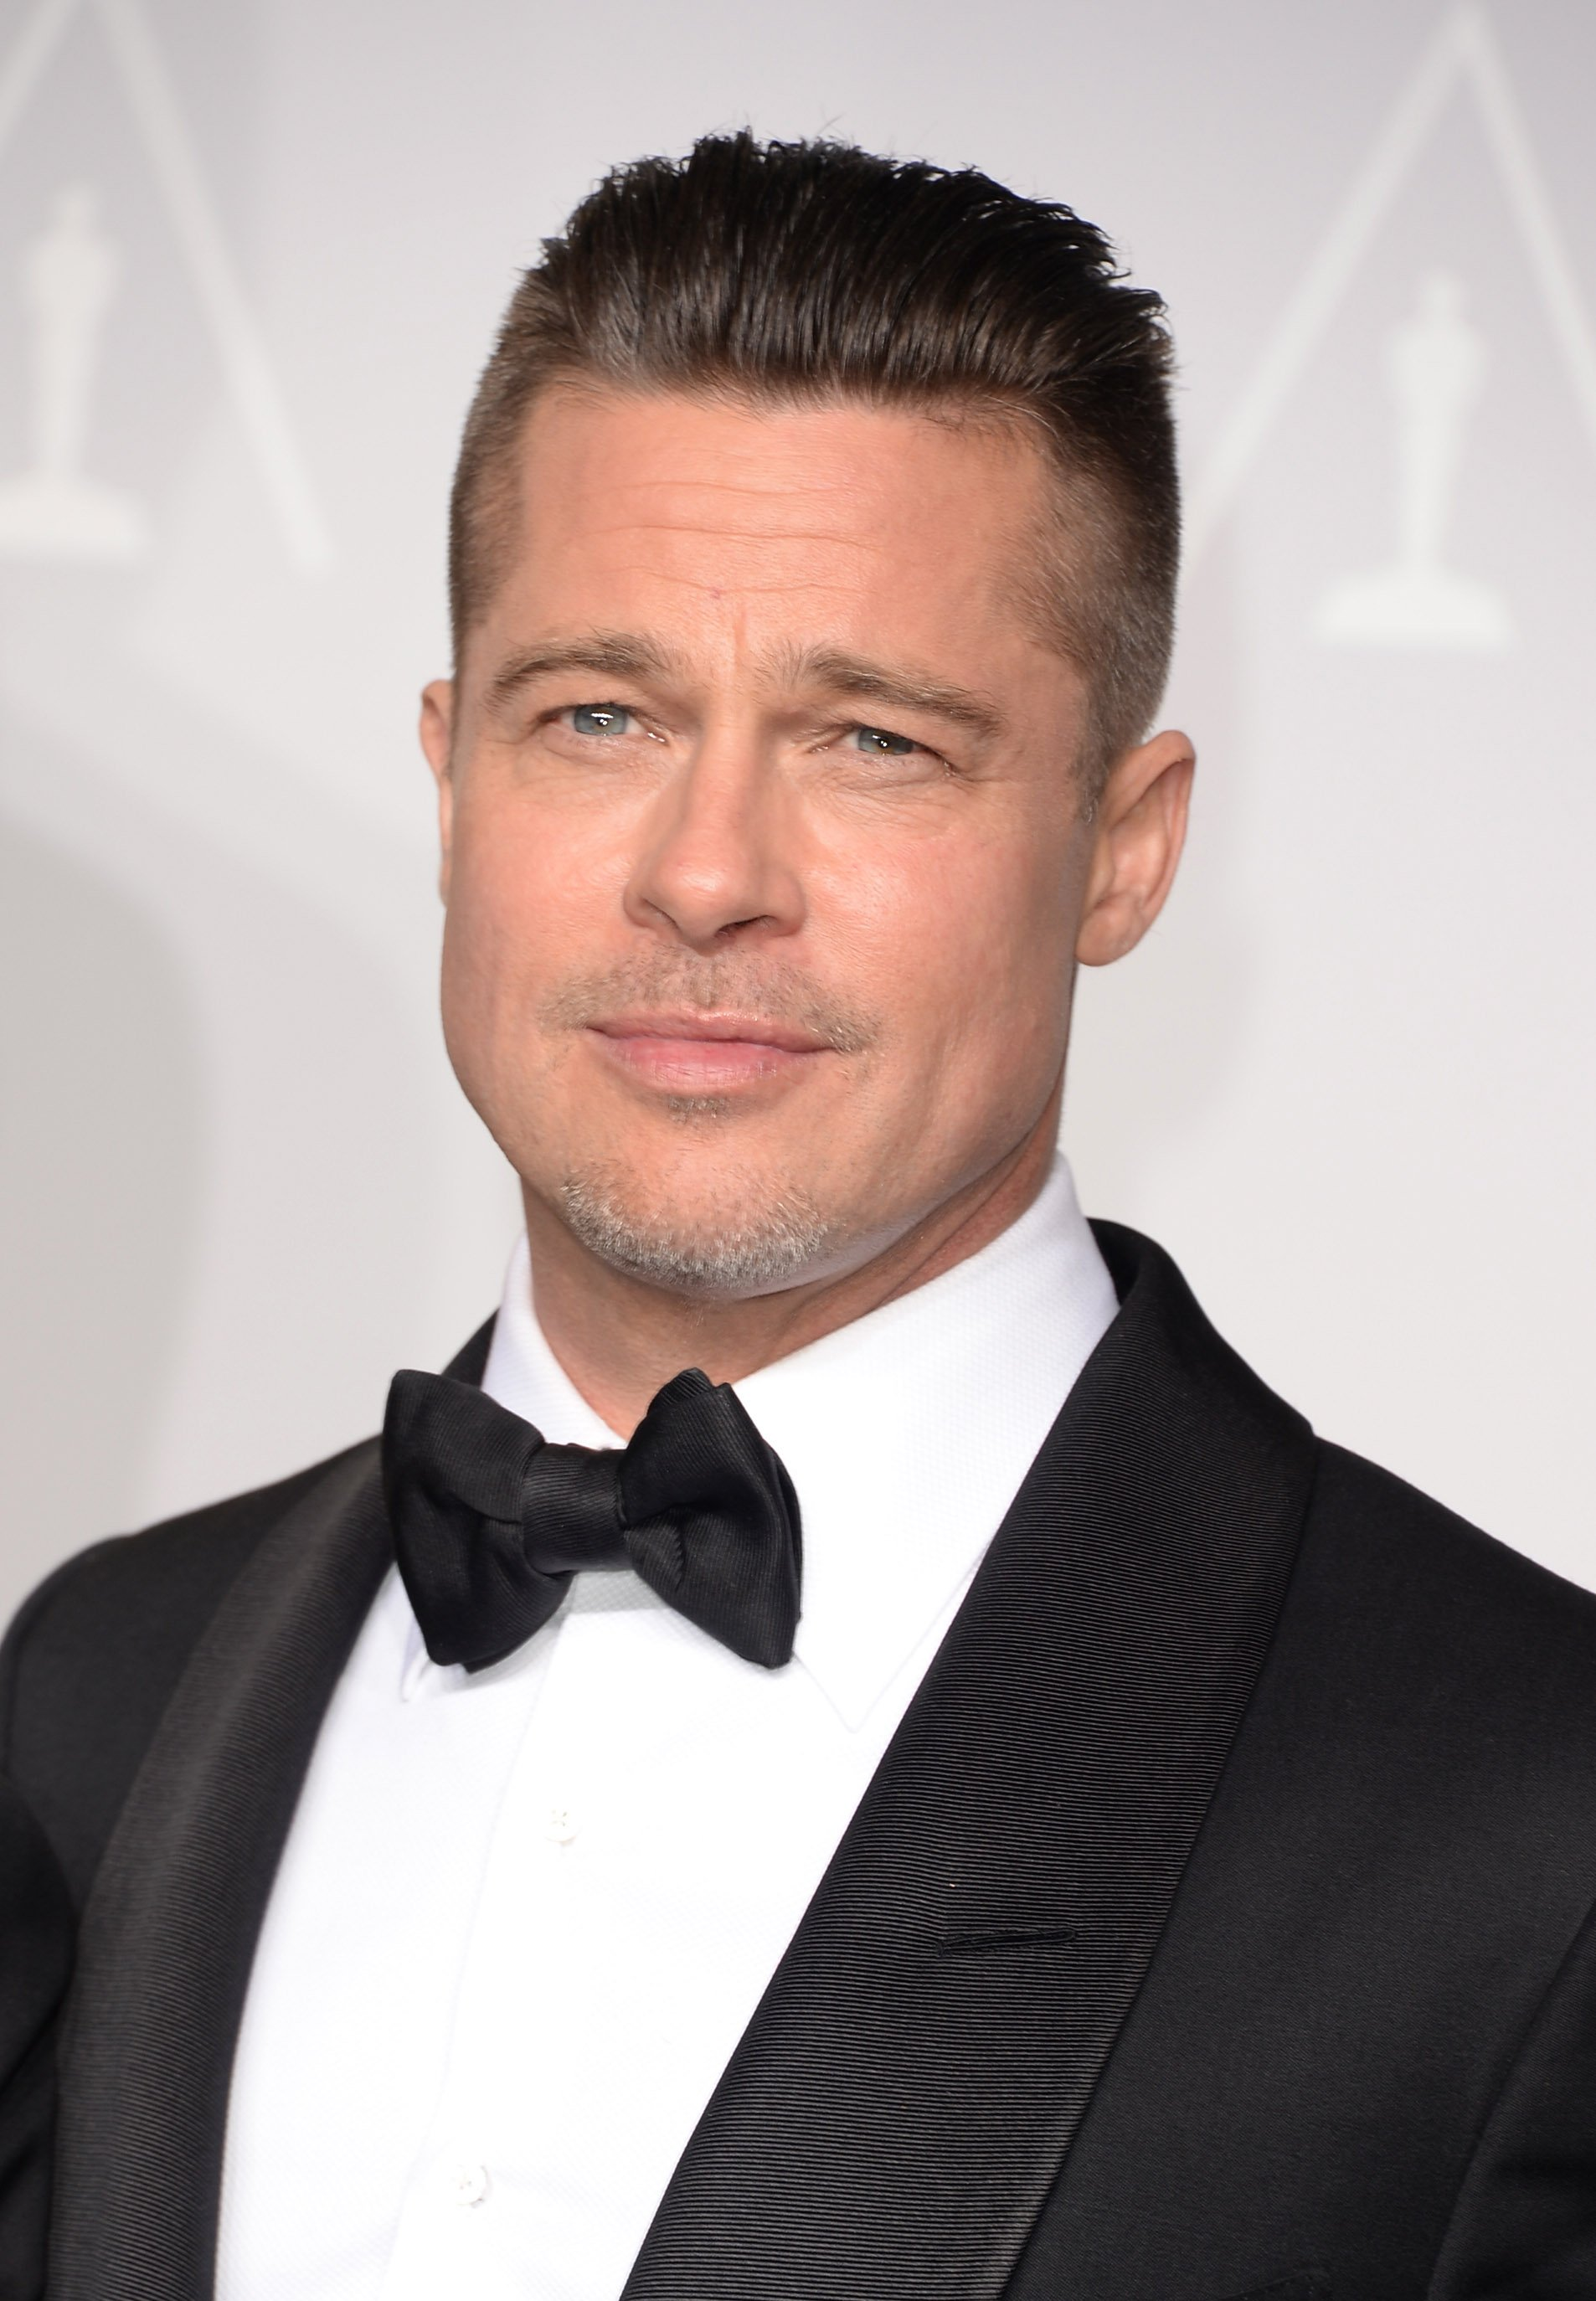 Brad Pitt during the 2014 Oscars in Hollywood, California. | Photo: Getty Images